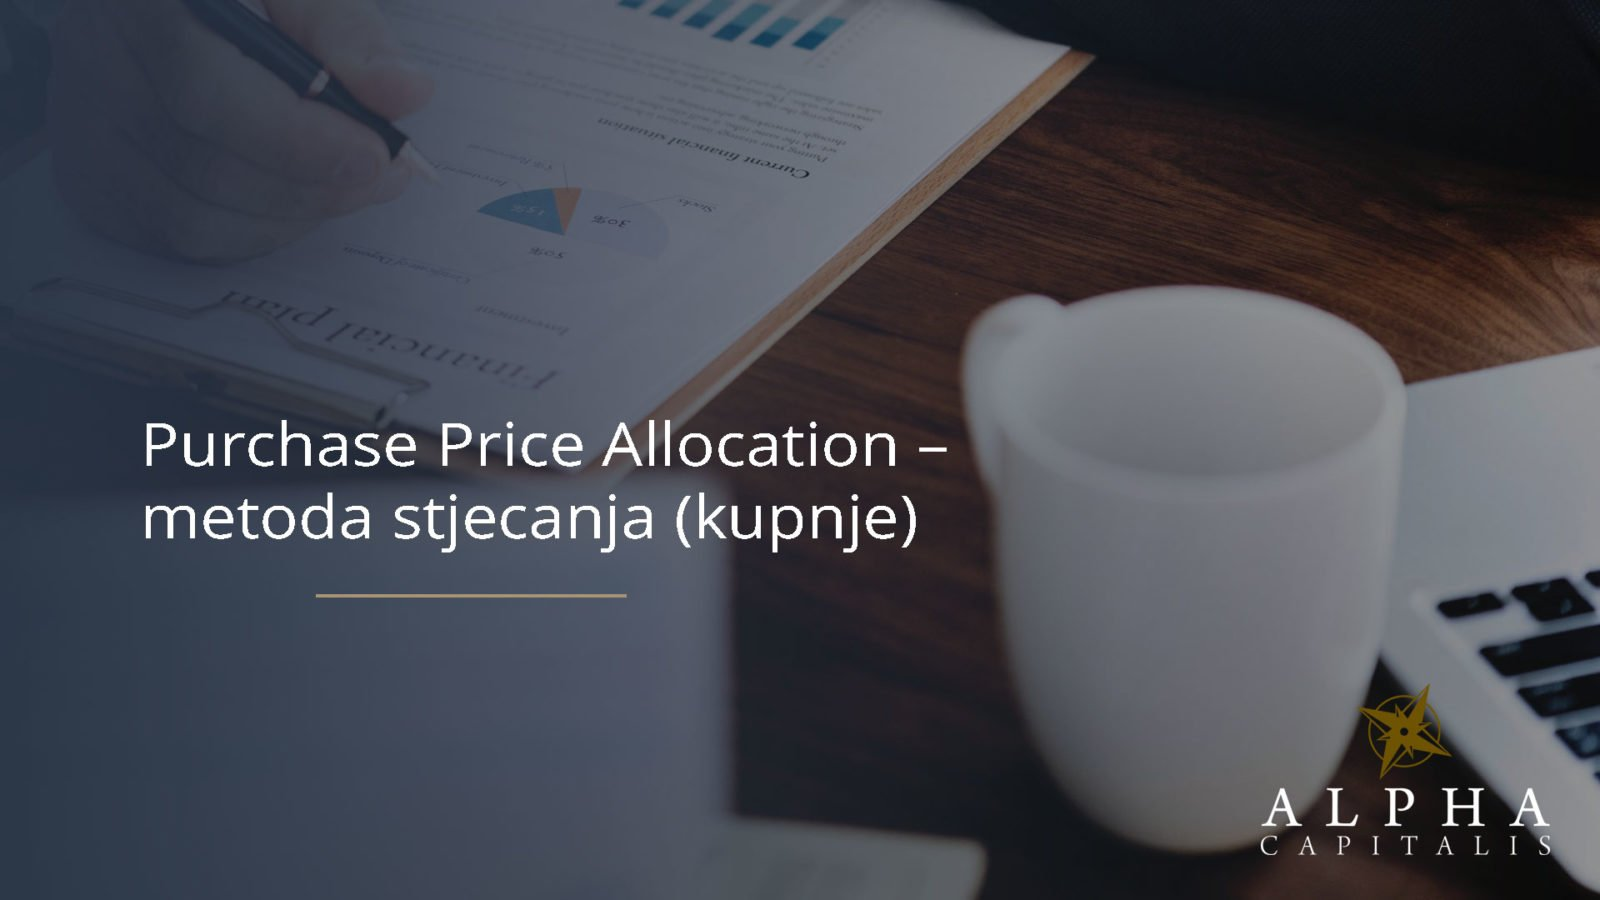 purchase price allocation - Purchase Price Allocation – metoda stjecanja (kupnje)